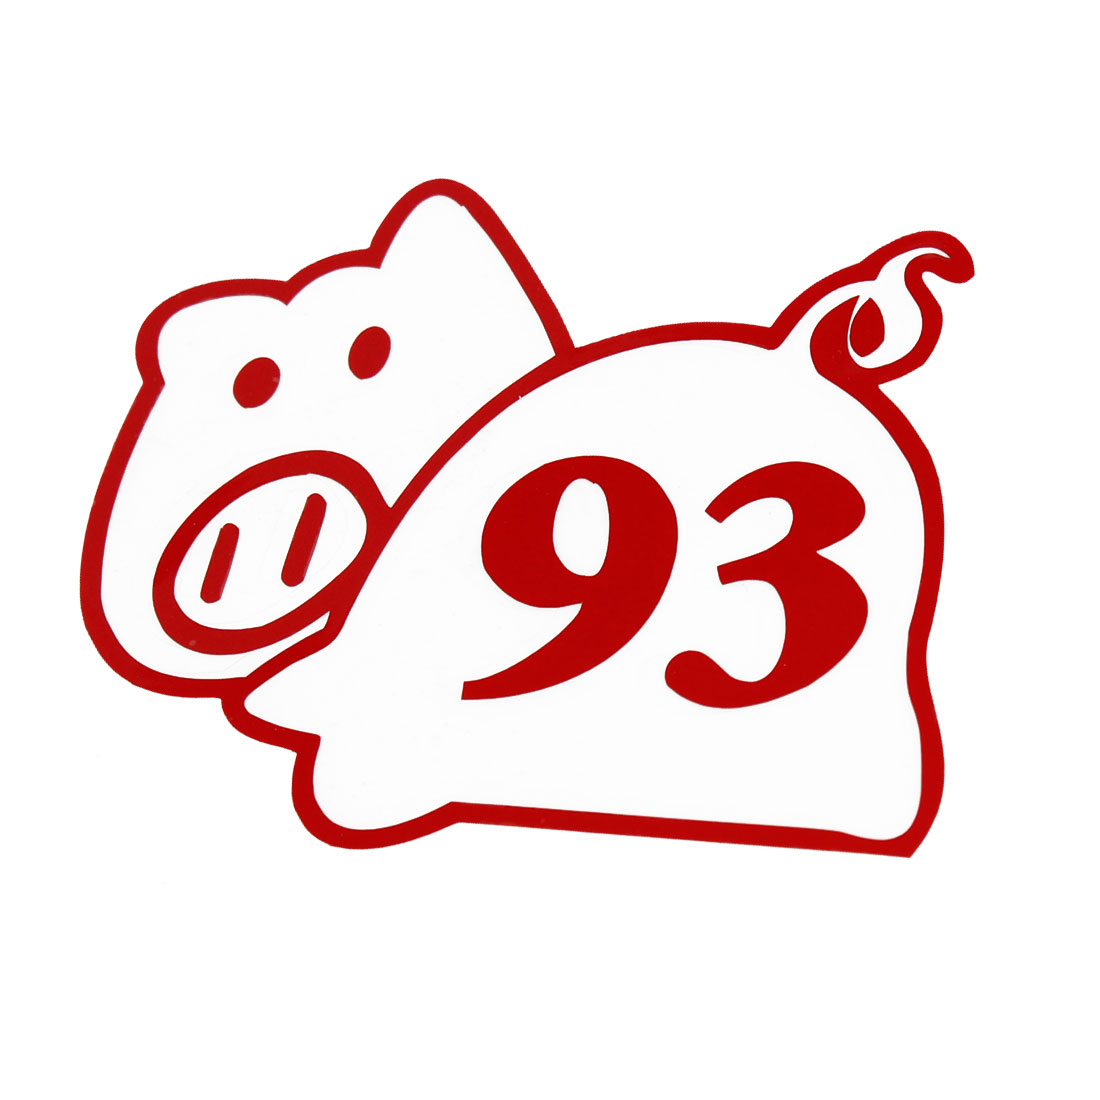 Adhesive Back Red Pig Shape Sticker Decal for Auto Adorn